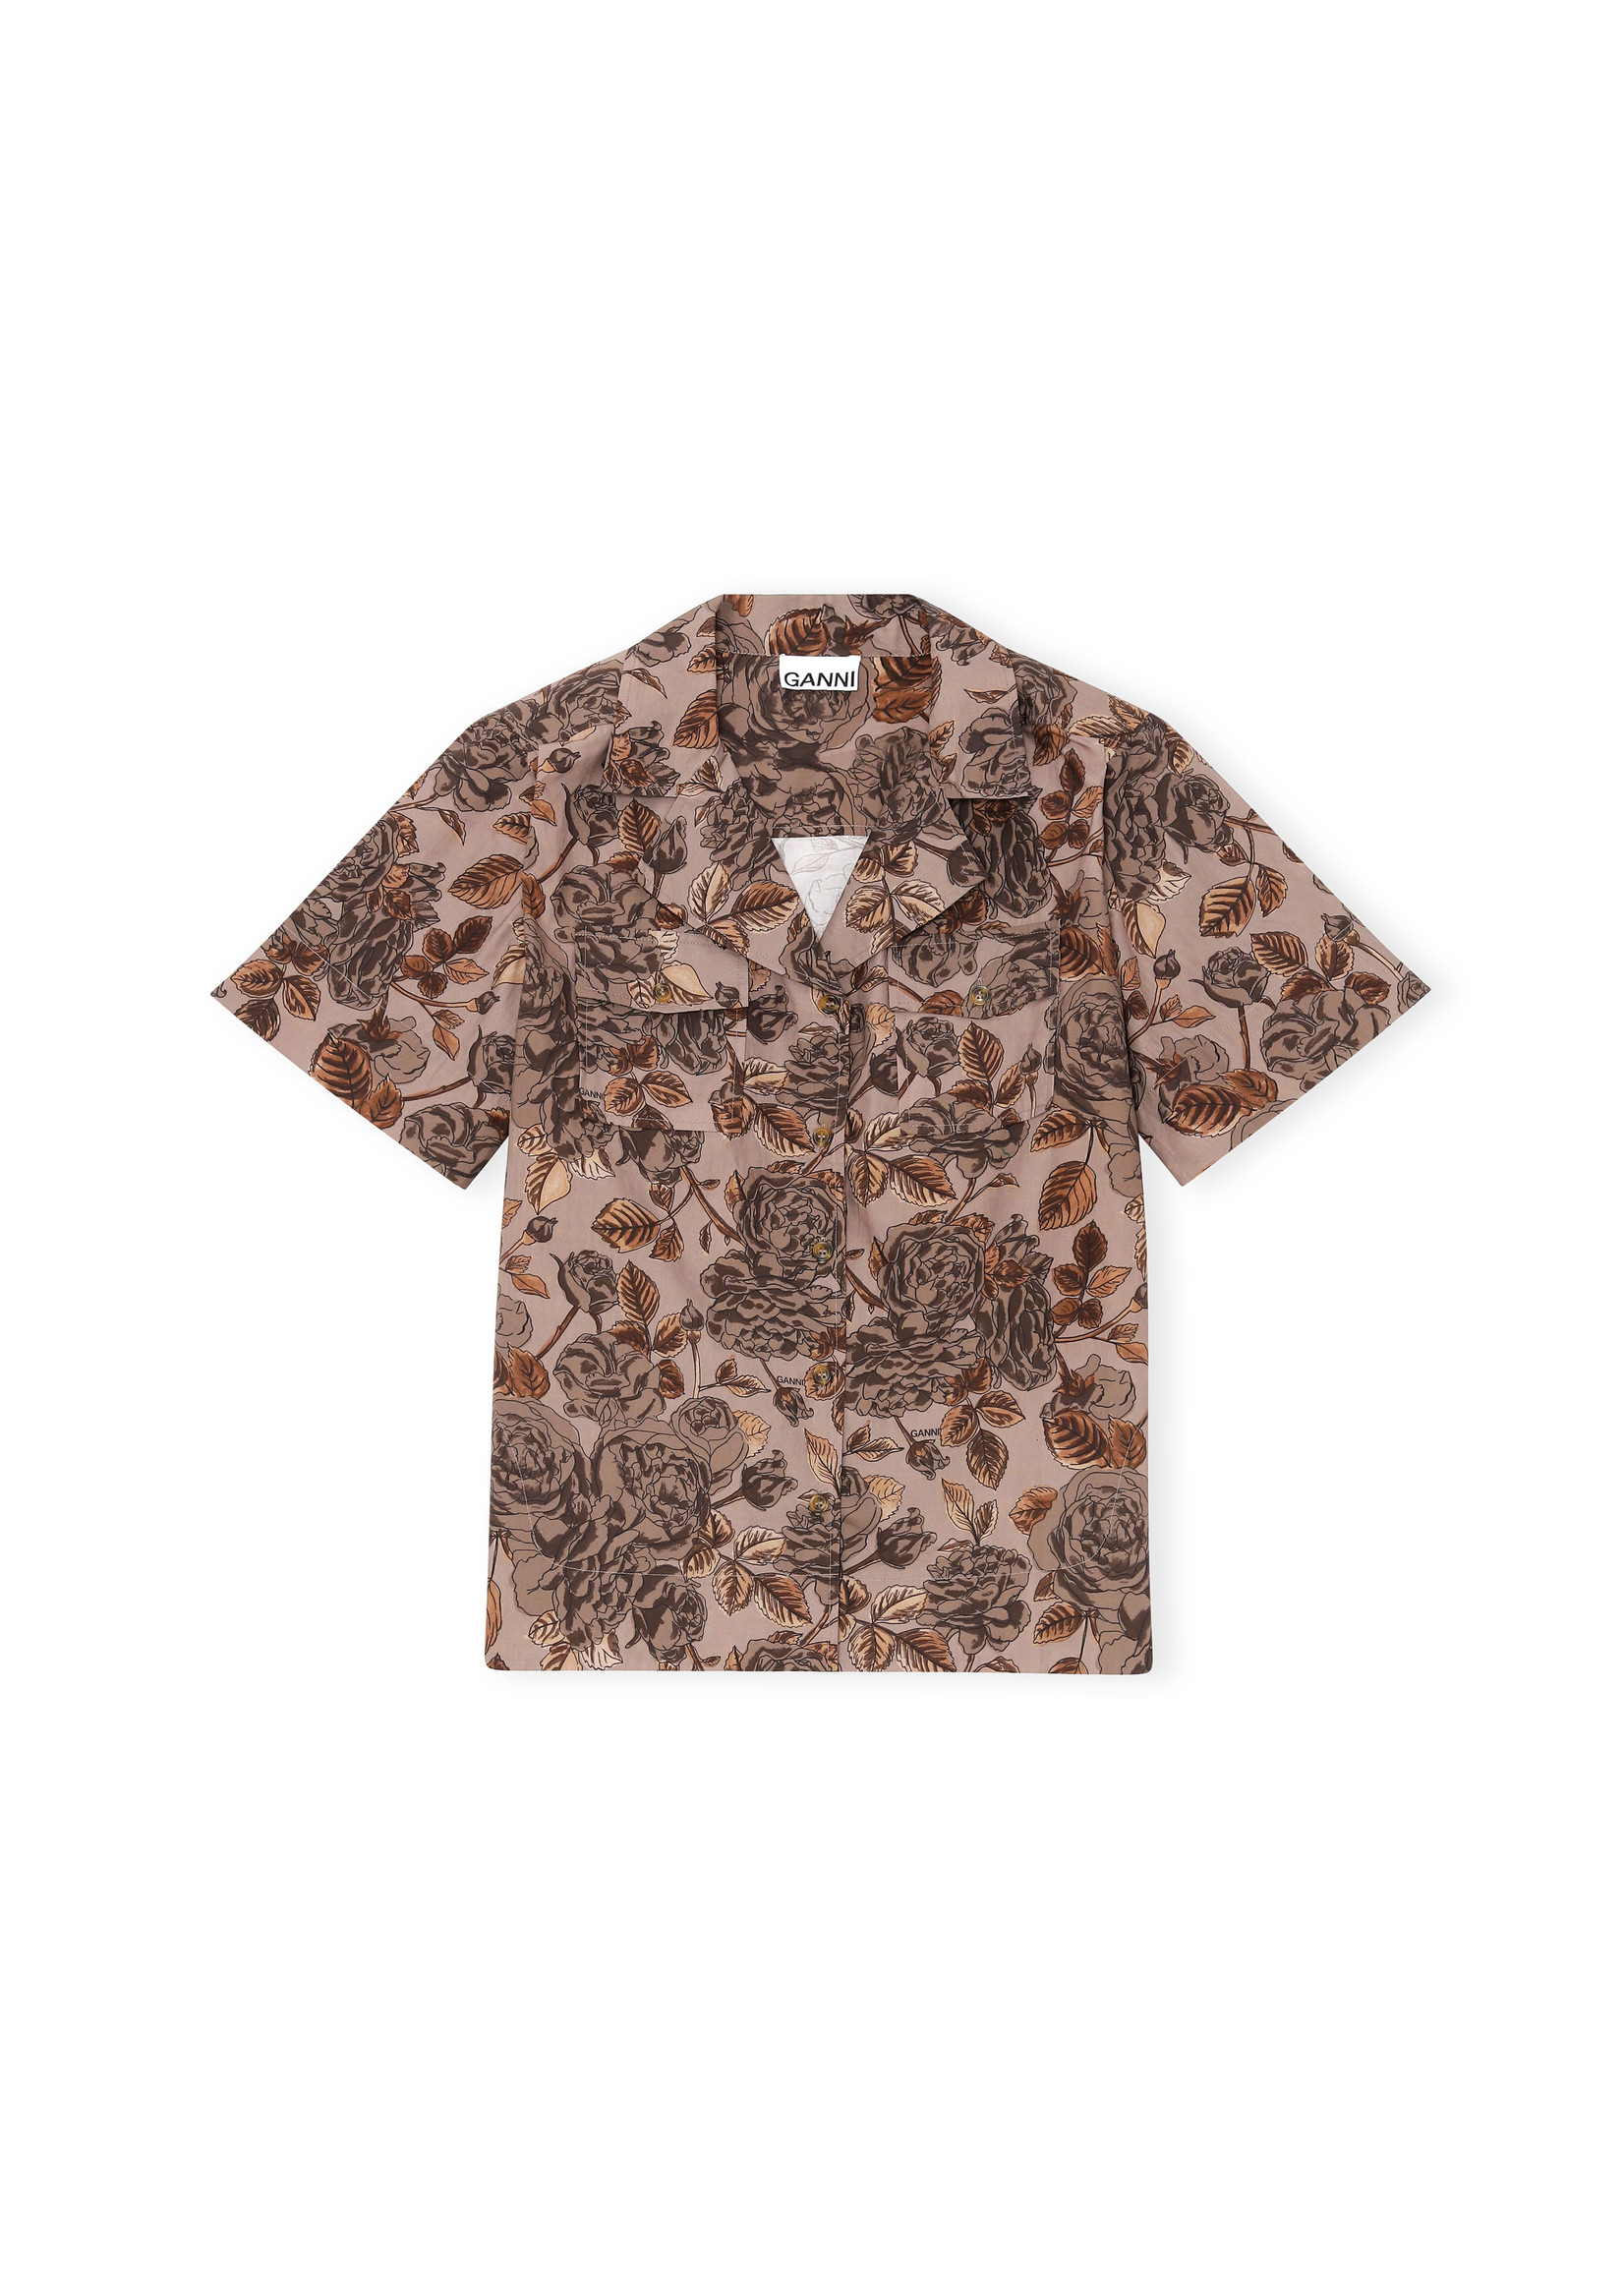 GANNI Floral Camp Shirt in Fossil